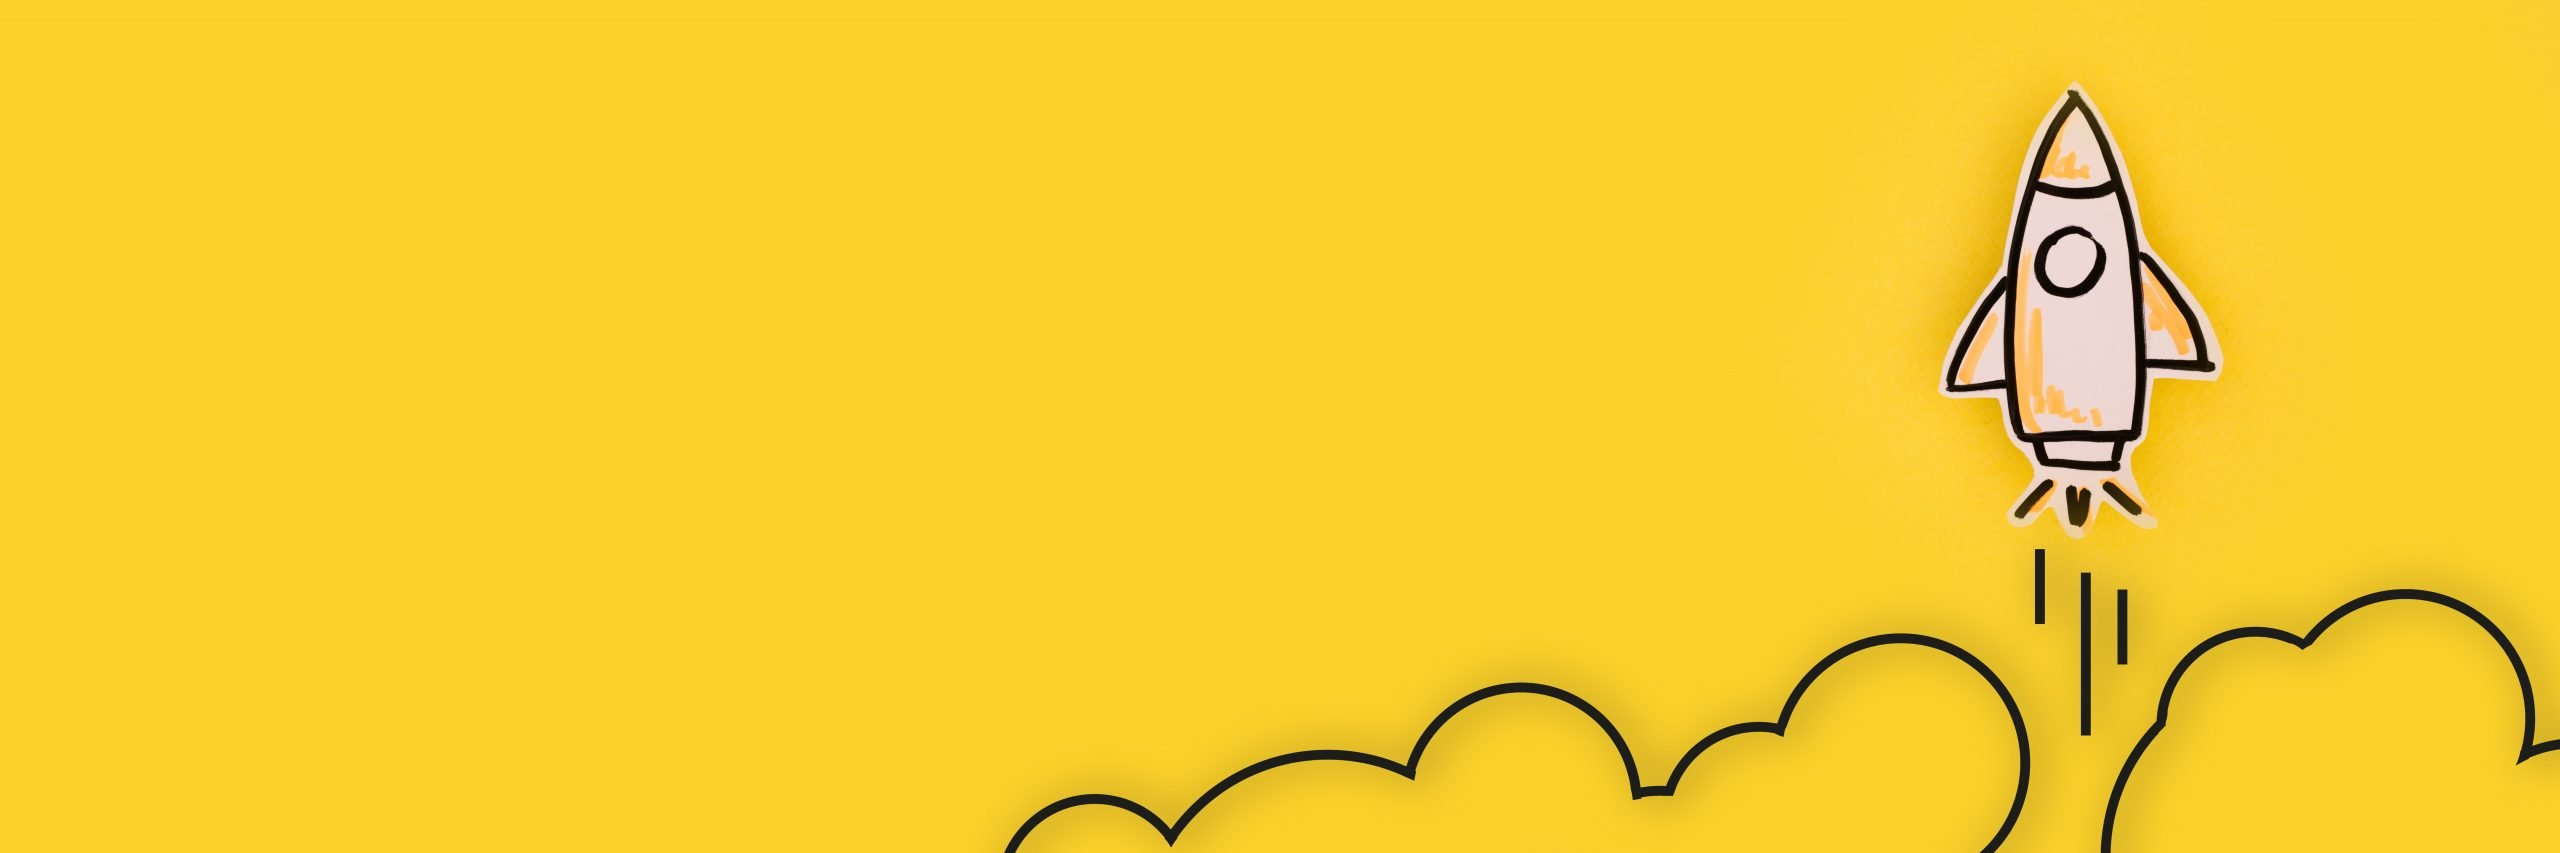 A cartoon rocket blasting off on a yellow background